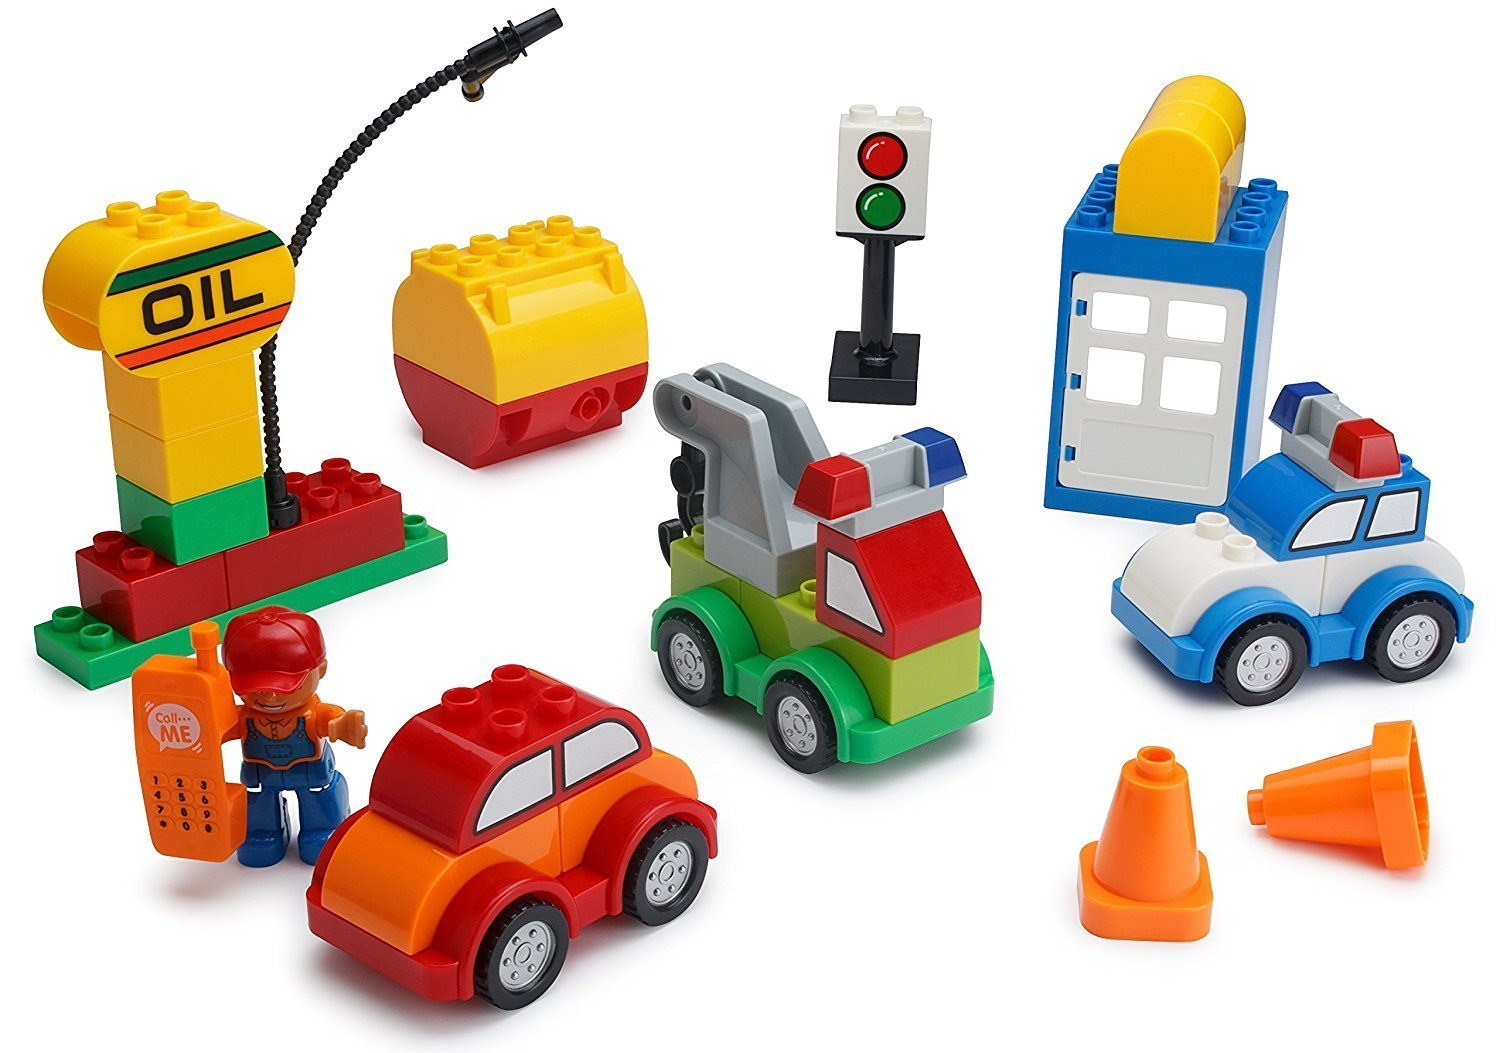 Play Build Car Creator Building Blocks Set – 52 Pieces – Includes Mechanic Minifigure, Garage Accessories & Base Parts to Create a Police Car, Oil Rig, Tow Truck & More – Compatible with DUPLO Review